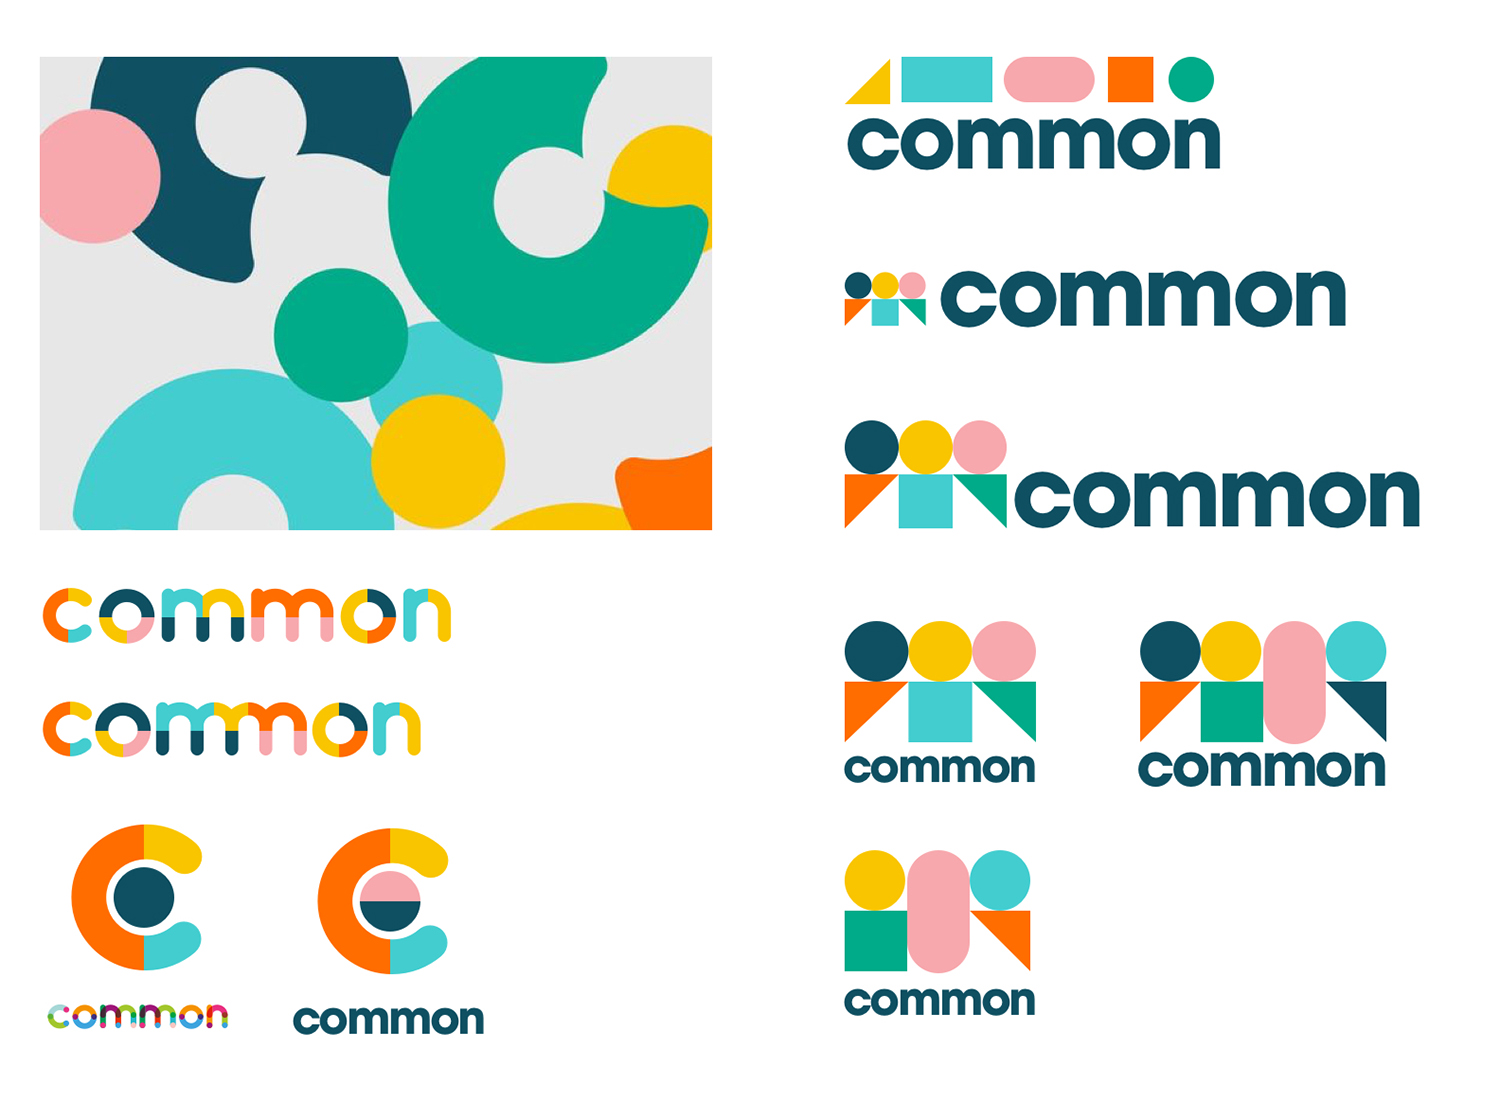 Variations on the common logo created in Sketch app. The final design was chosen for this simplicity of shape and narrative of people coming together.